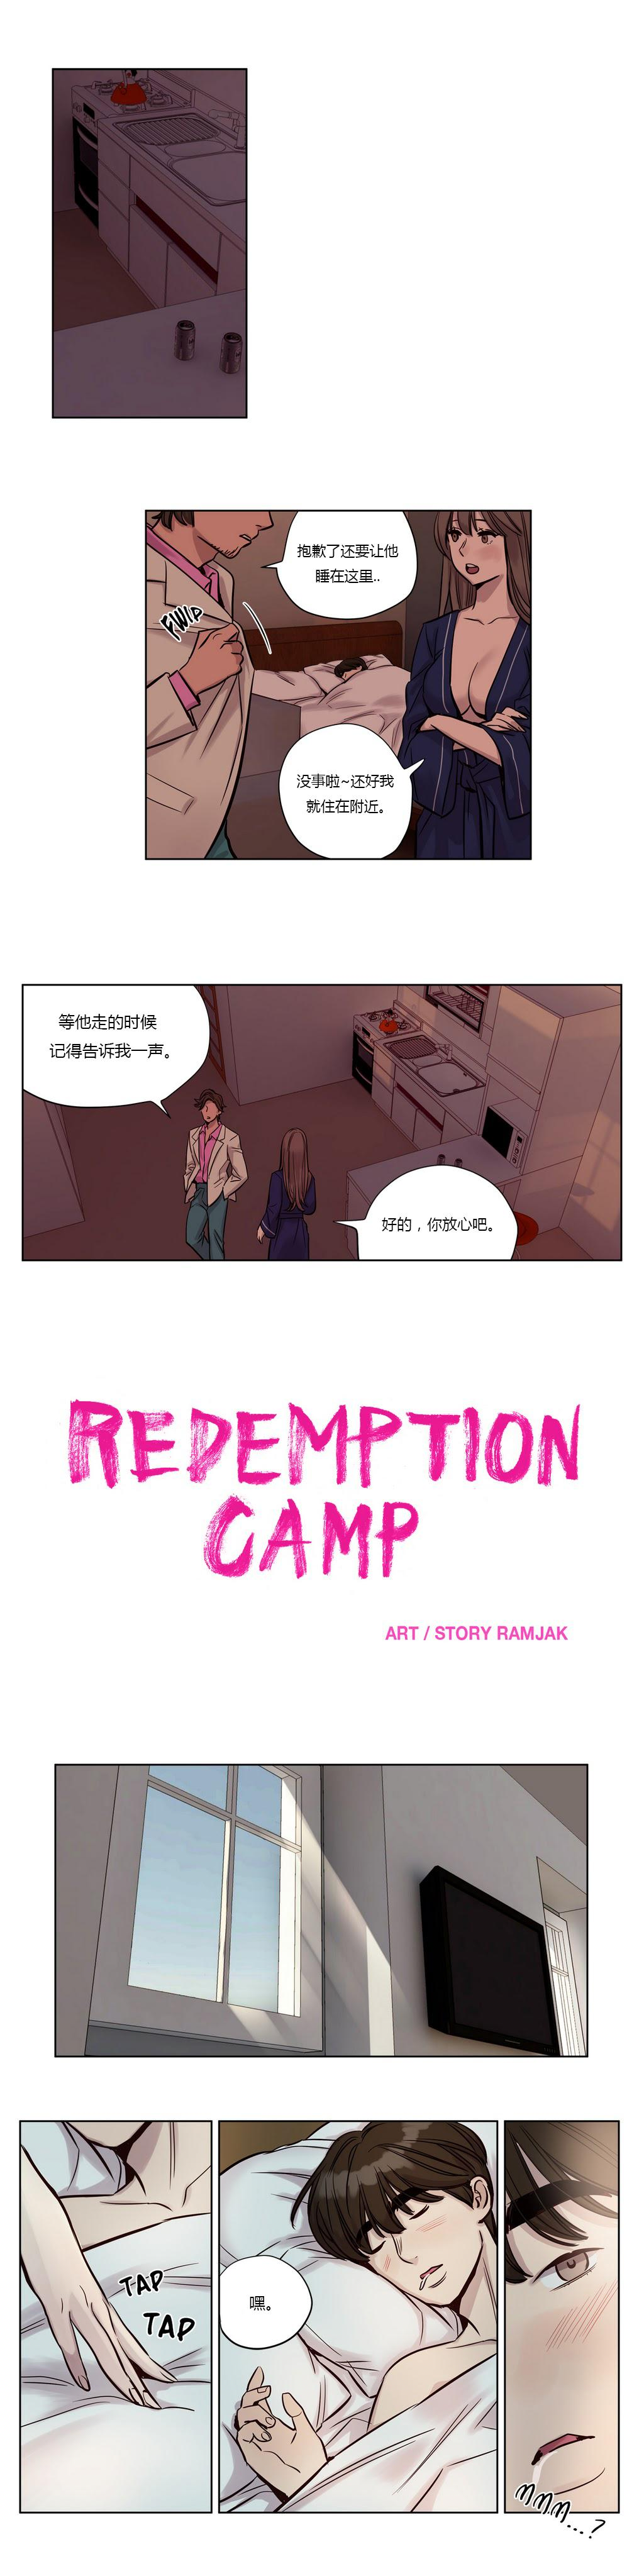 Atonement Camp Ch.0-34 304